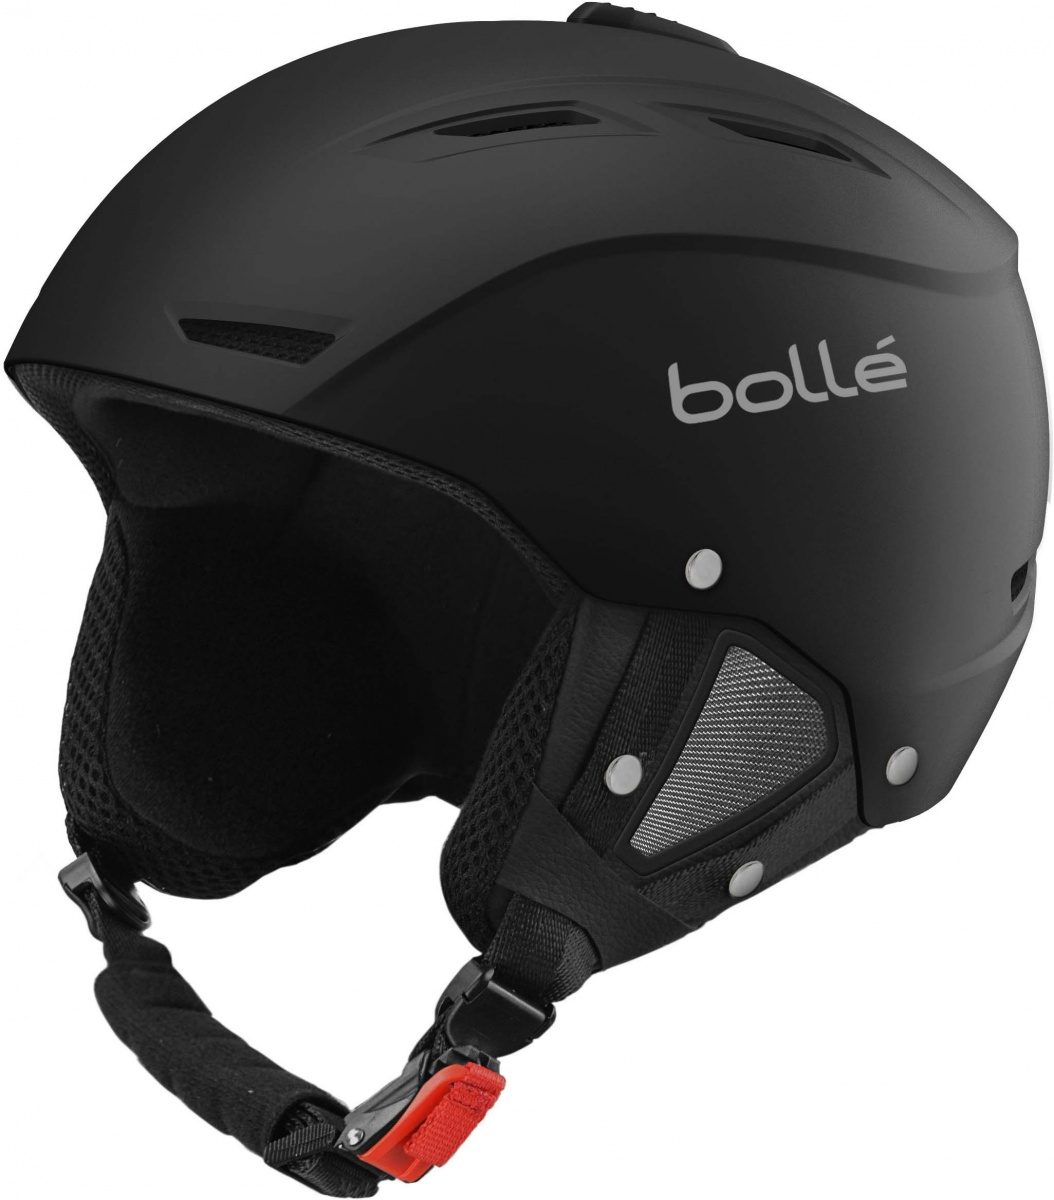 bolle c backline soft black casques de ski. Black Bedroom Furniture Sets. Home Design Ideas